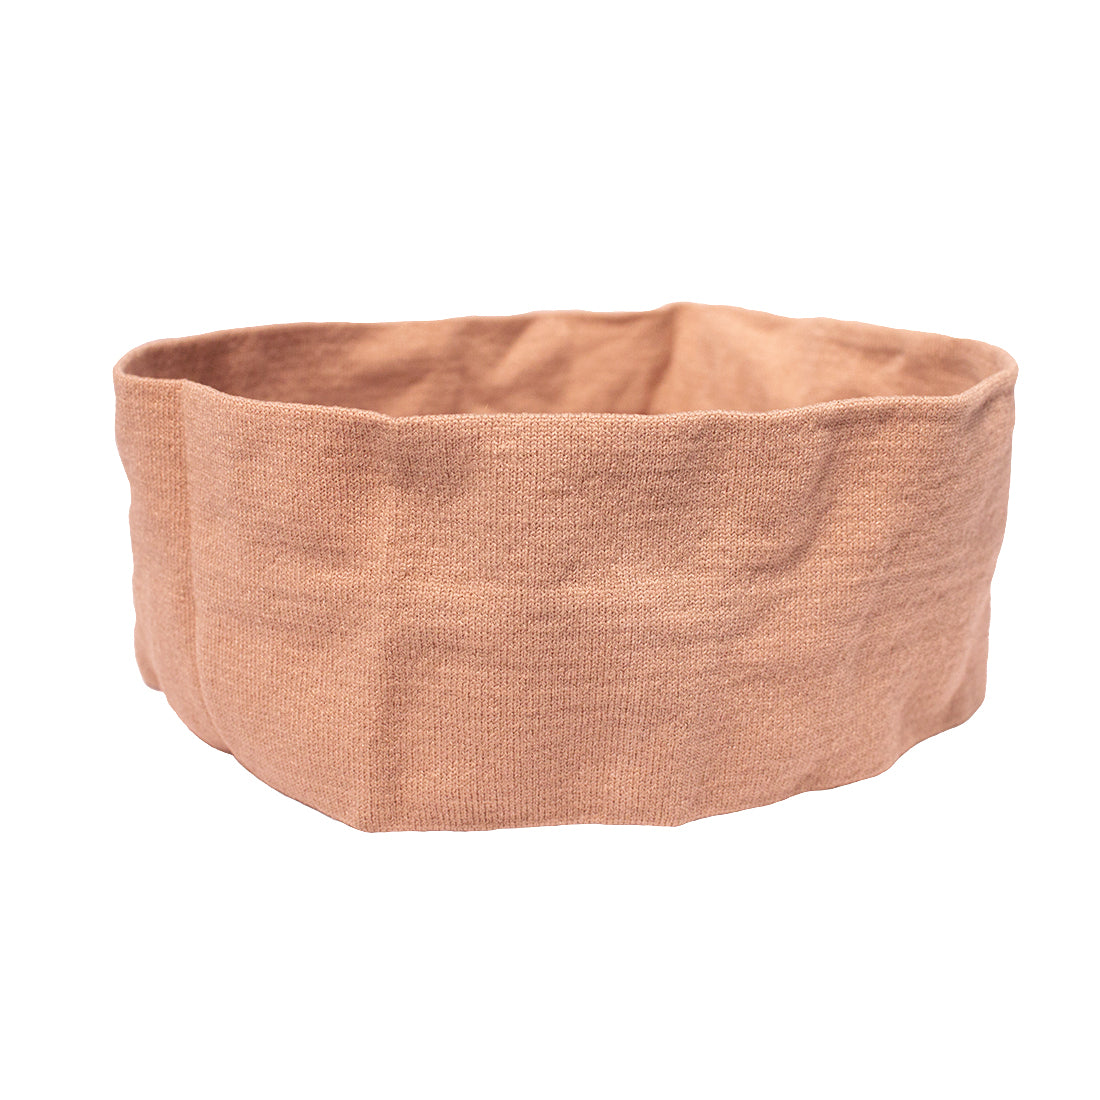 Crunchie Headband - Light Brown